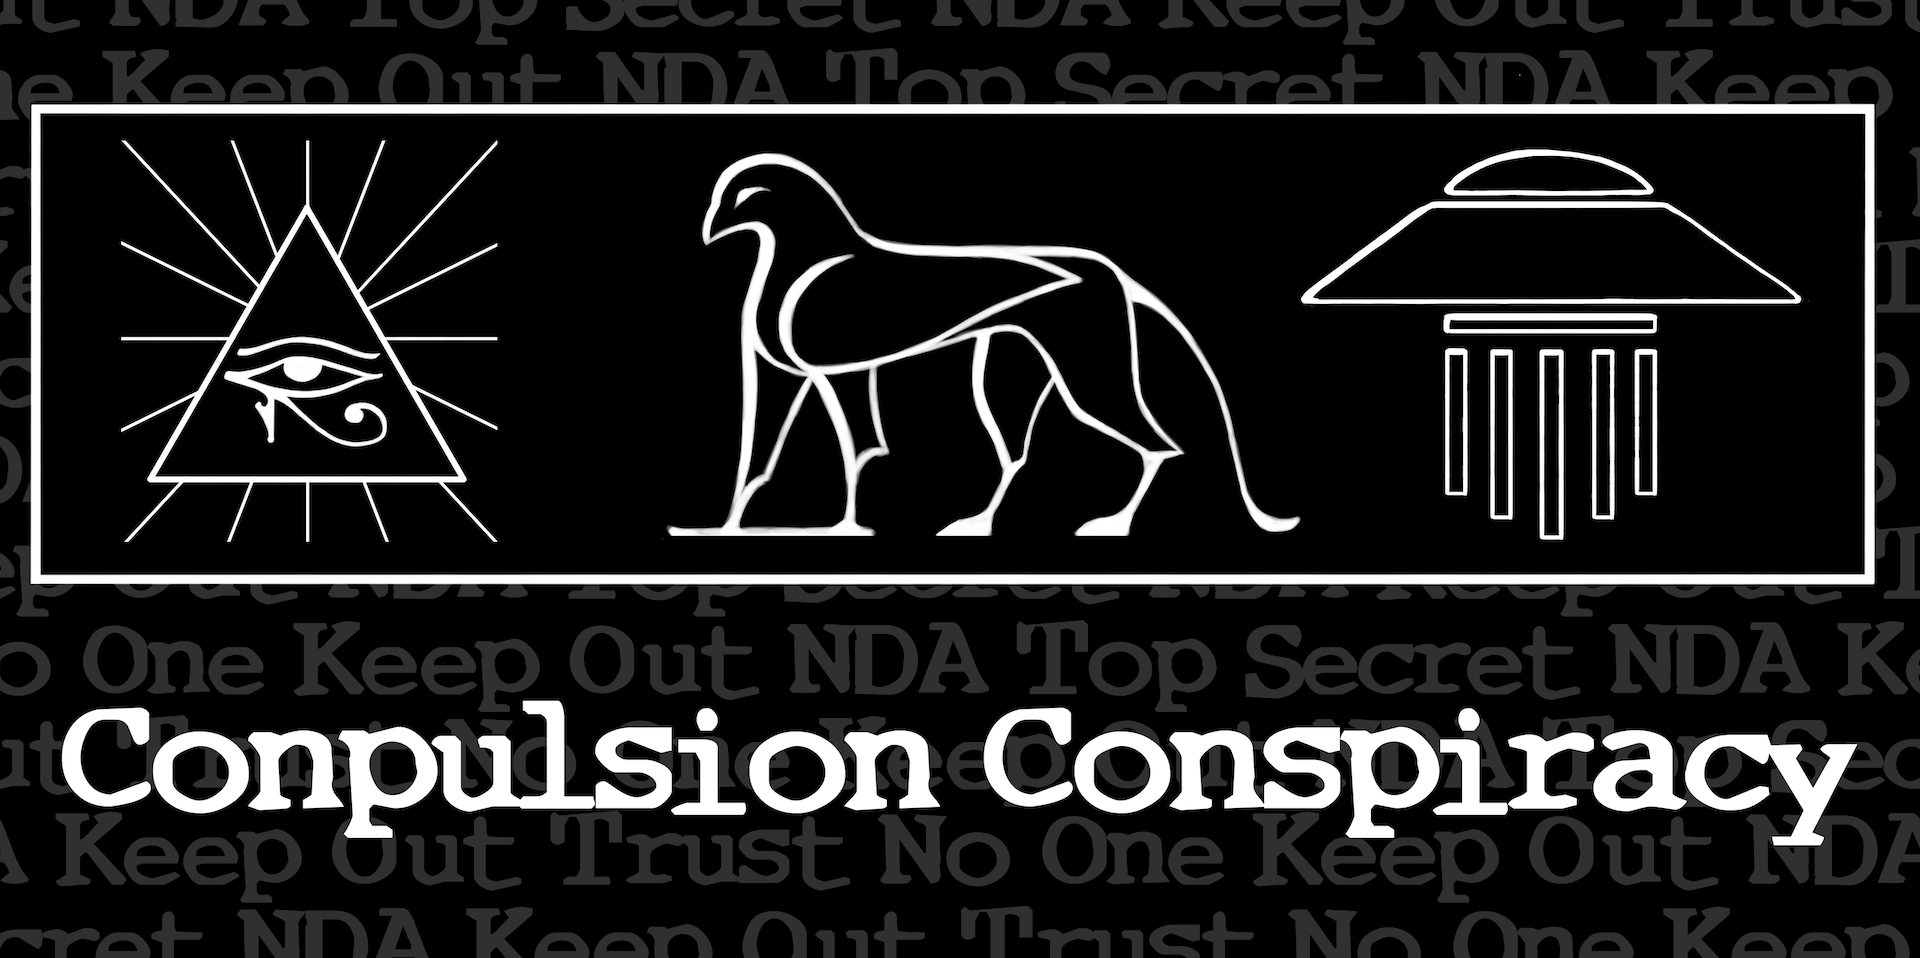 Conpulsion Conspiracy